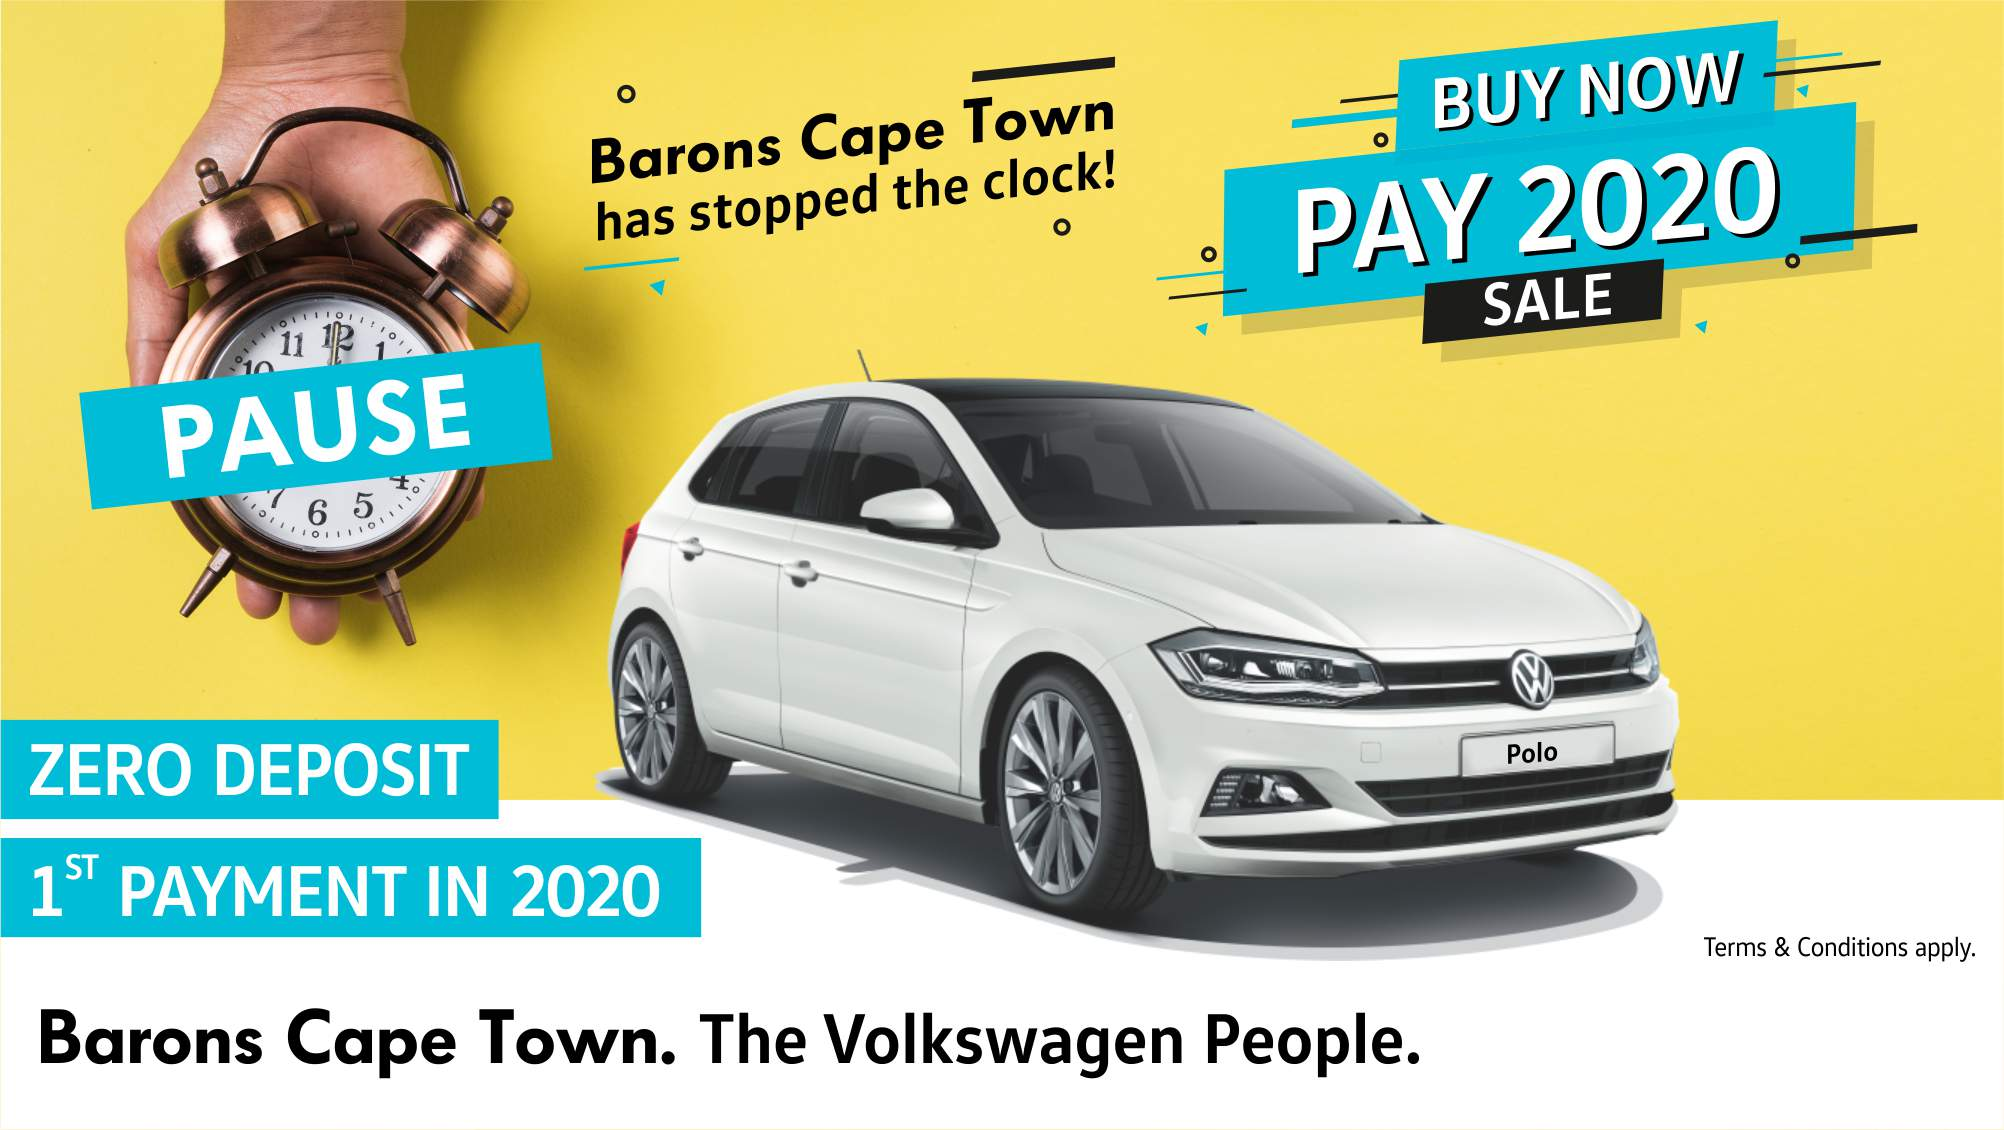 Barons Cape Town Buy now, pay 2020 Sale banner